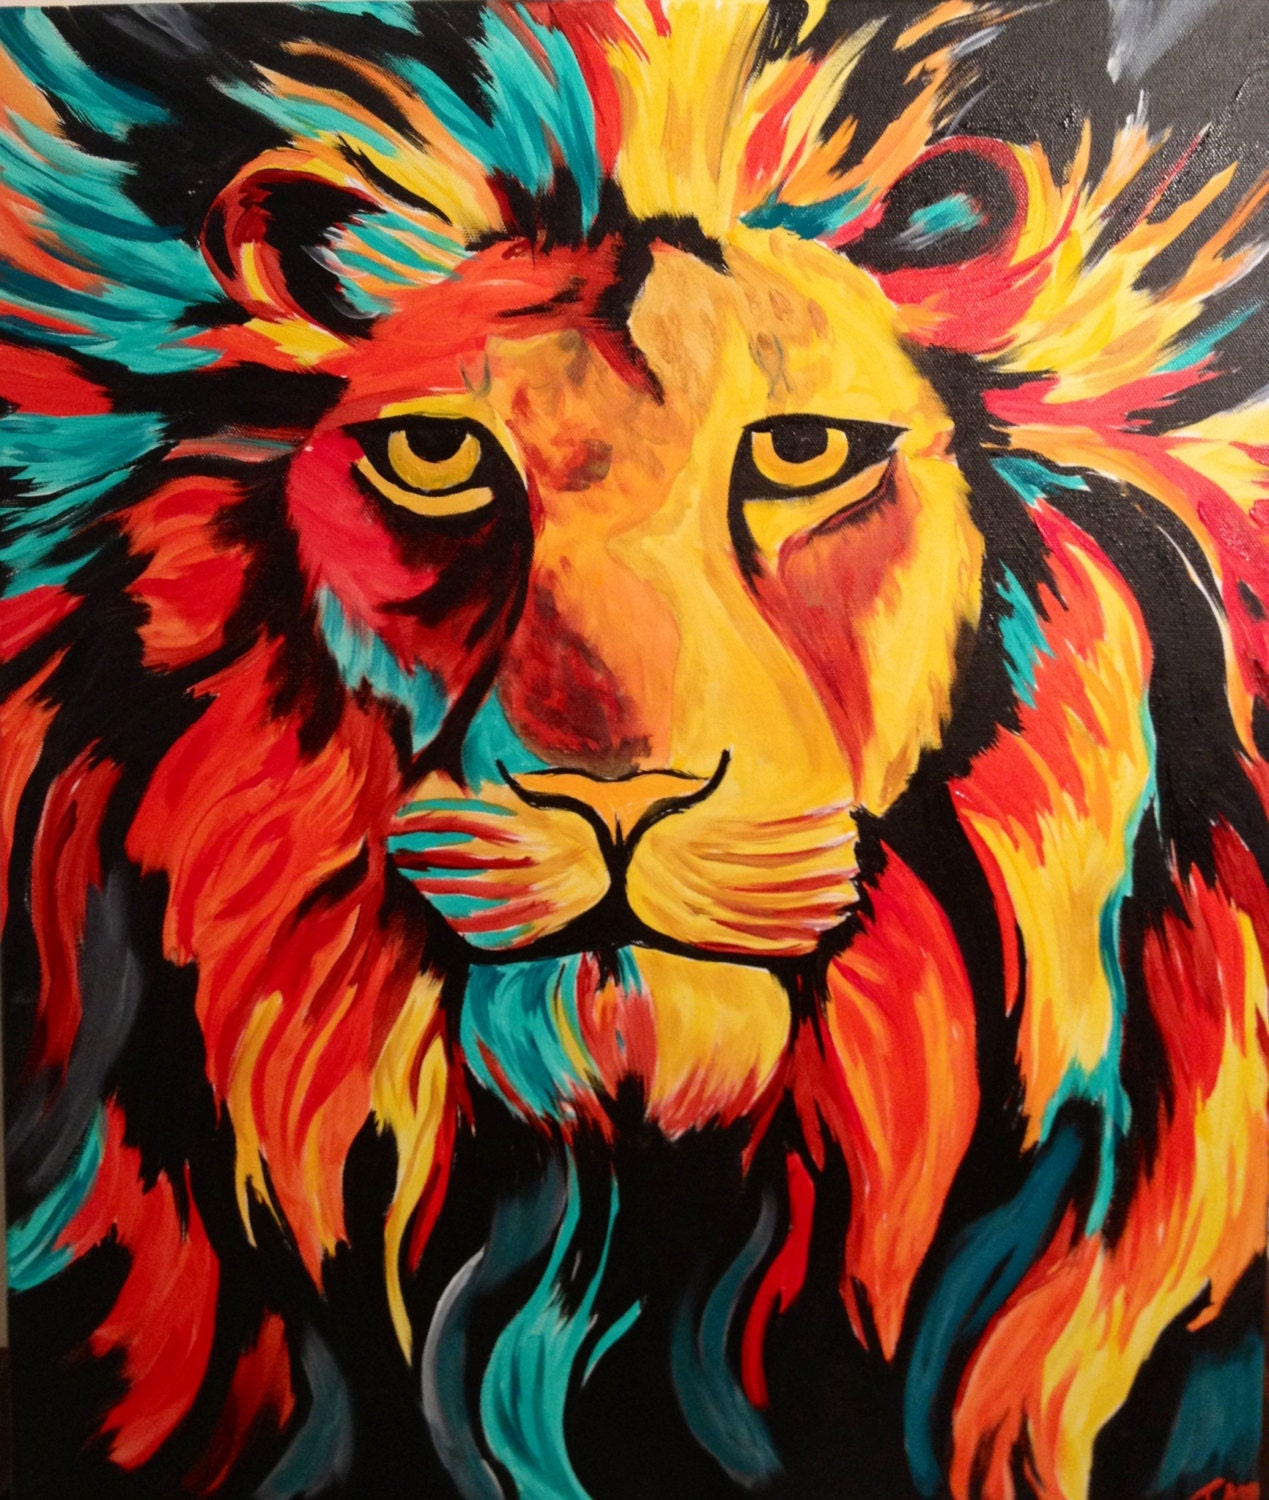 Colorful lion painting - photo#5